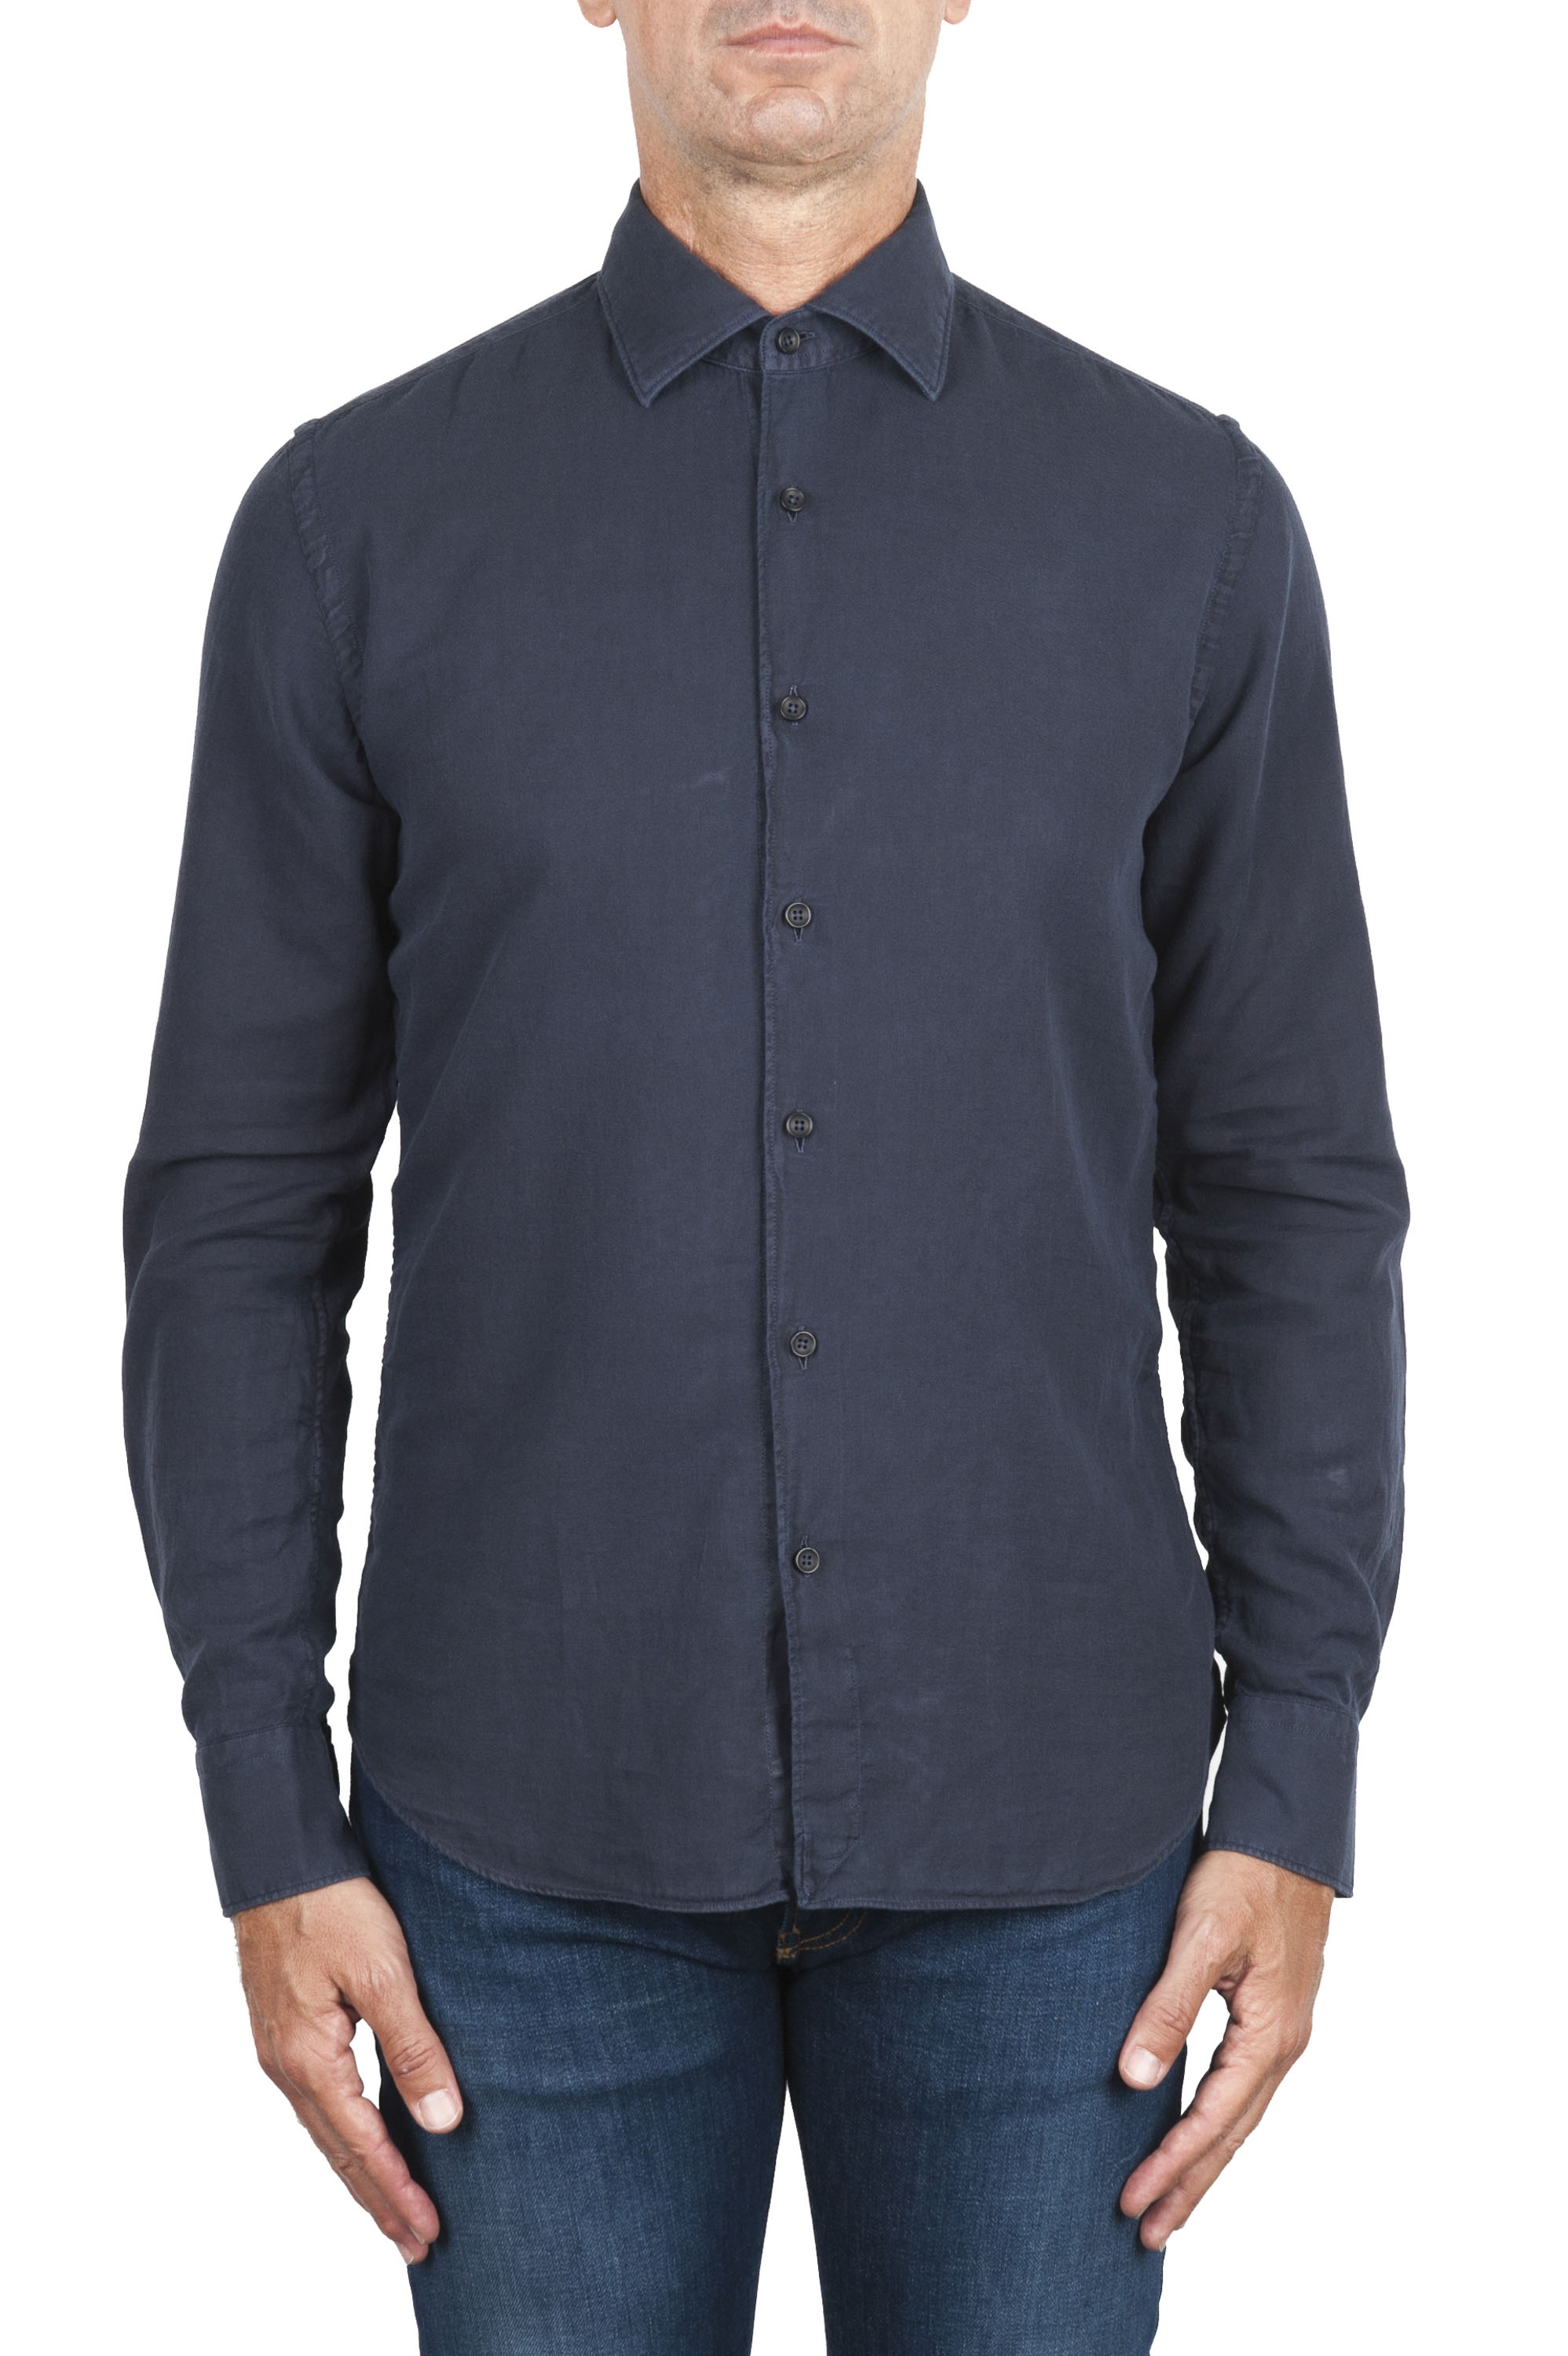 SBU 02900_2020AW Blue navy cotton twill shirt 01